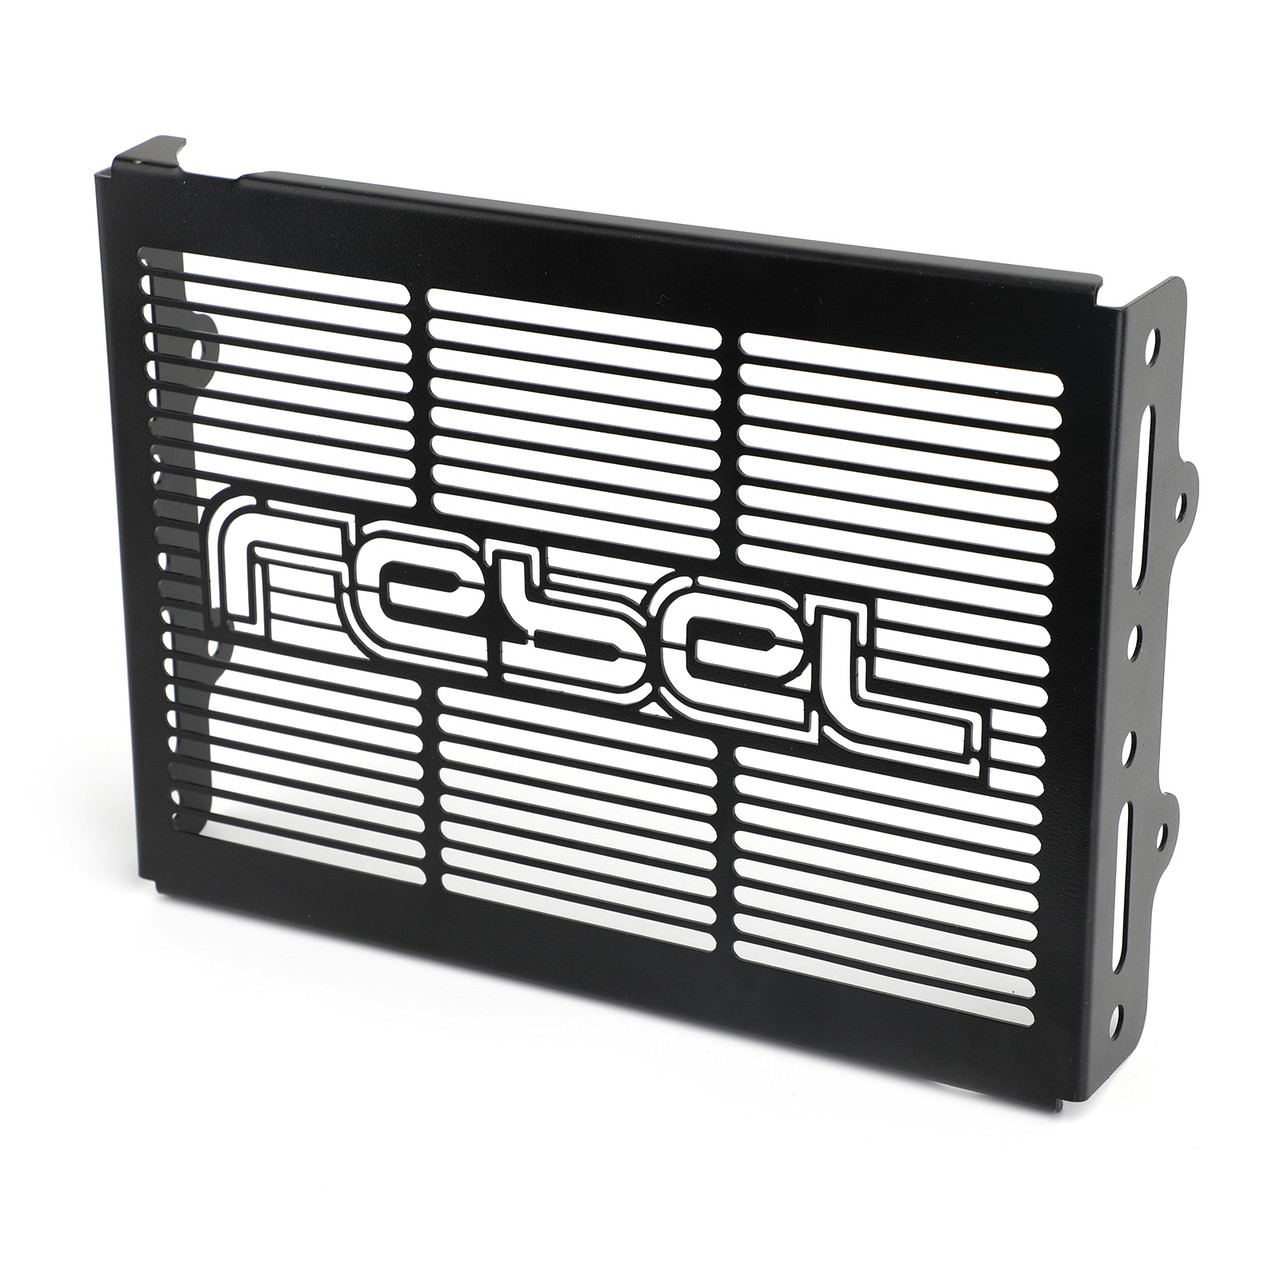 Stainless Steel Radiator Guard Protector Grill Cover Fit For Honda CMX 300/500 Rebel 300 500 17-20 Black